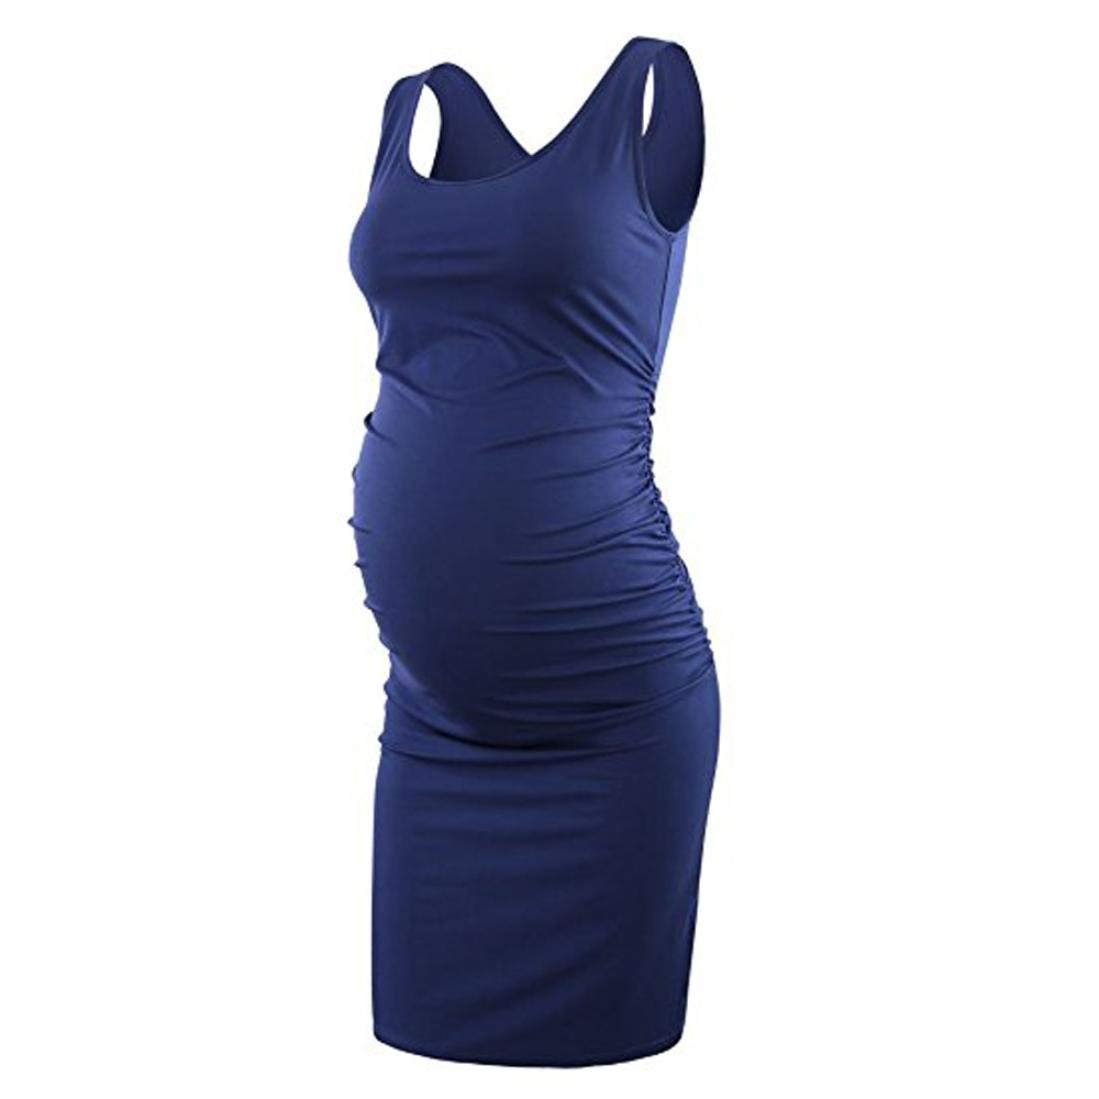 d3f8a5210a WuyiMC® Maternity Dress Sexy Women's Ruched Maternity Bodycon Dress Mama  Causual Sleeveless Wrap Dresses